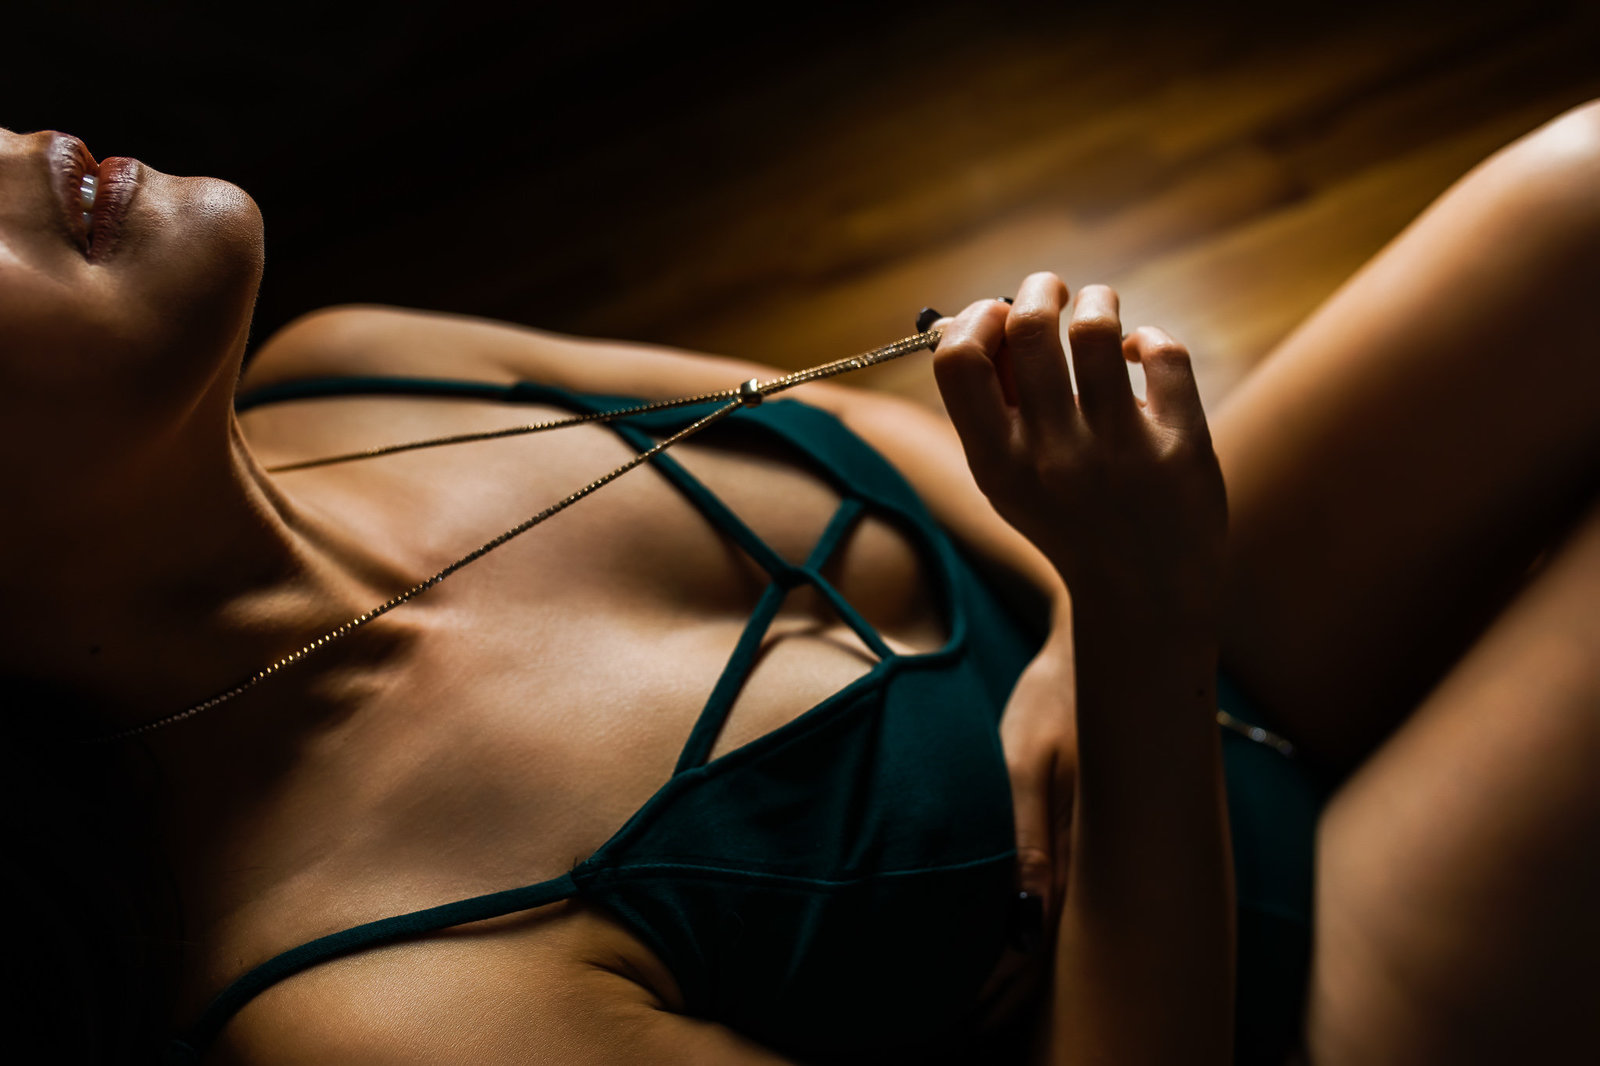 Dark and moody boudoir photo of a woman playing with her necklace